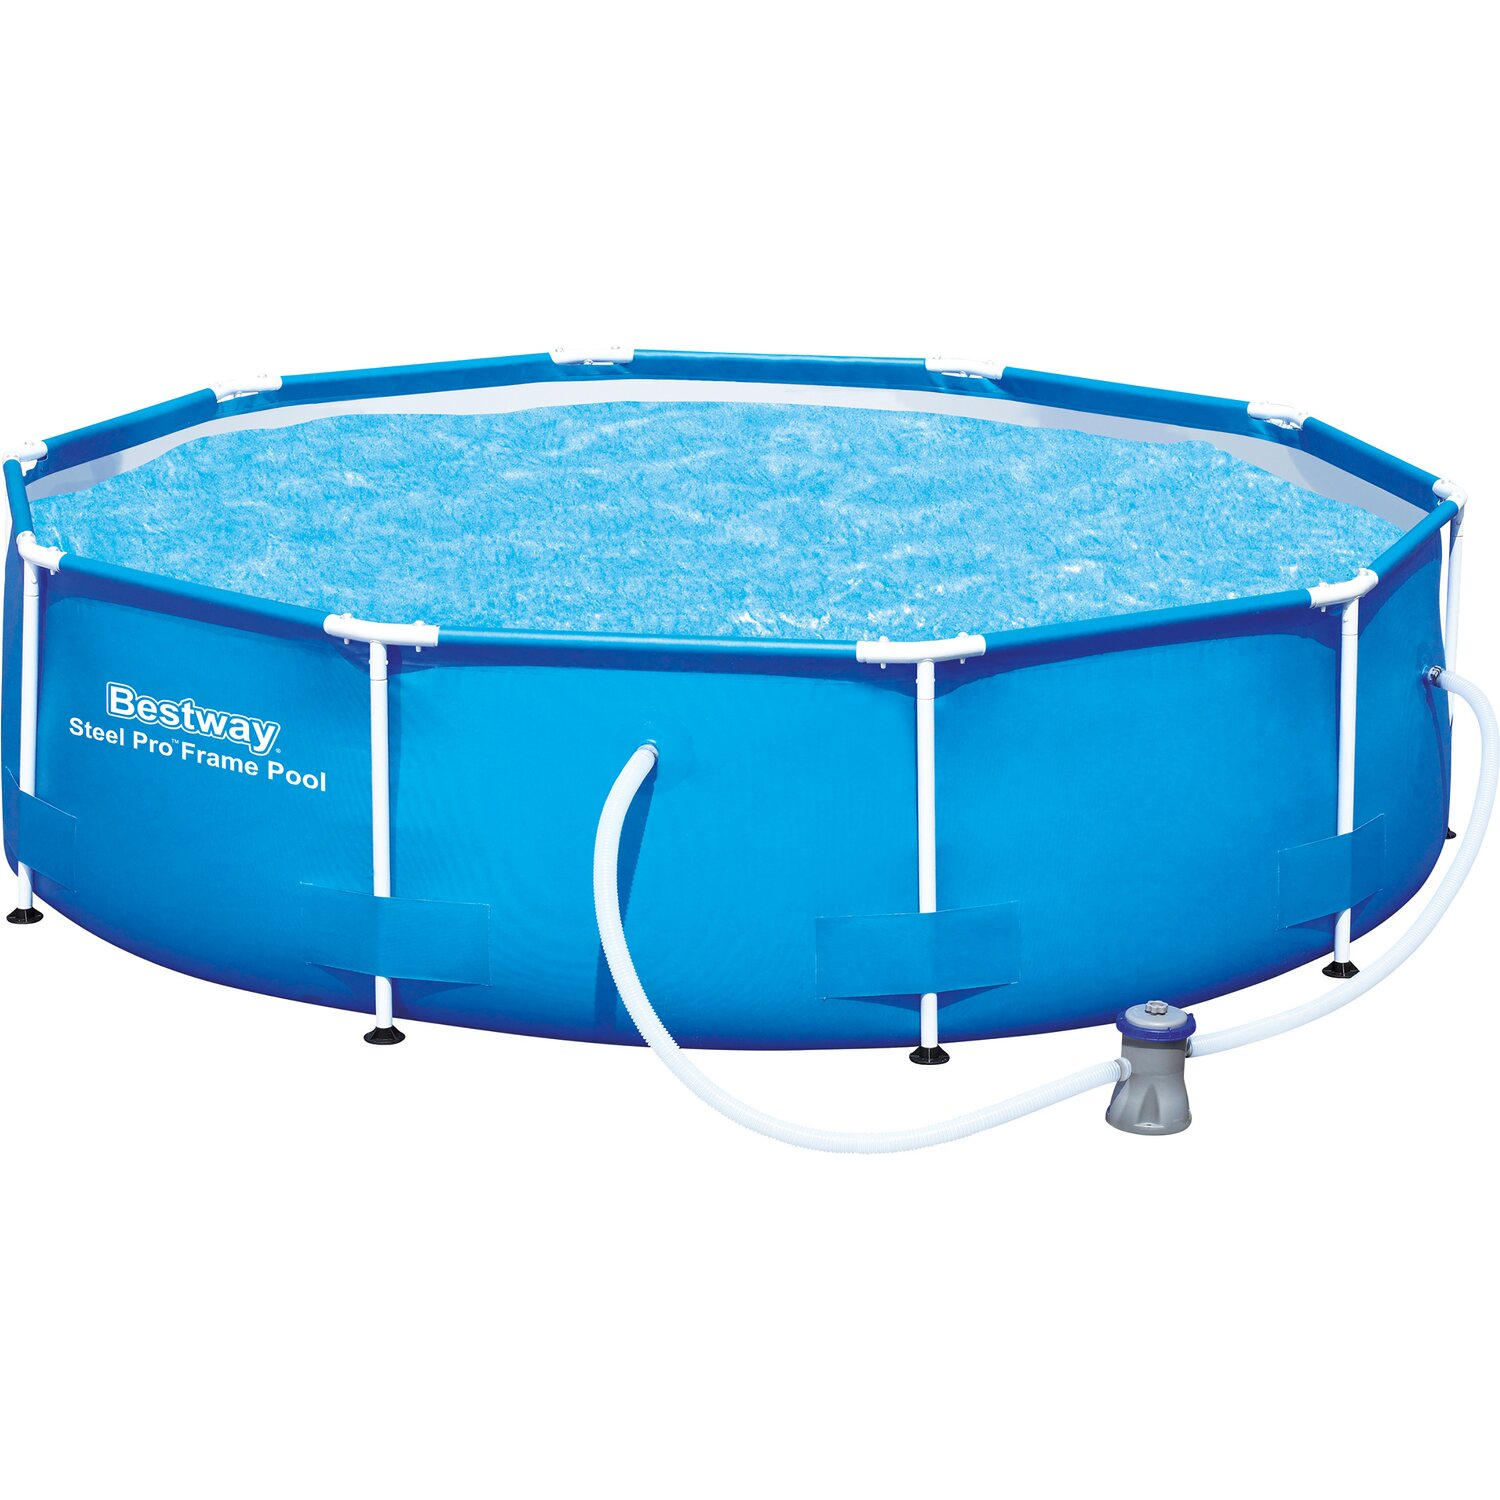 Bestway stahlrahmen swimming pool set 305 cm x 76 cm for Bestway pool bei obi